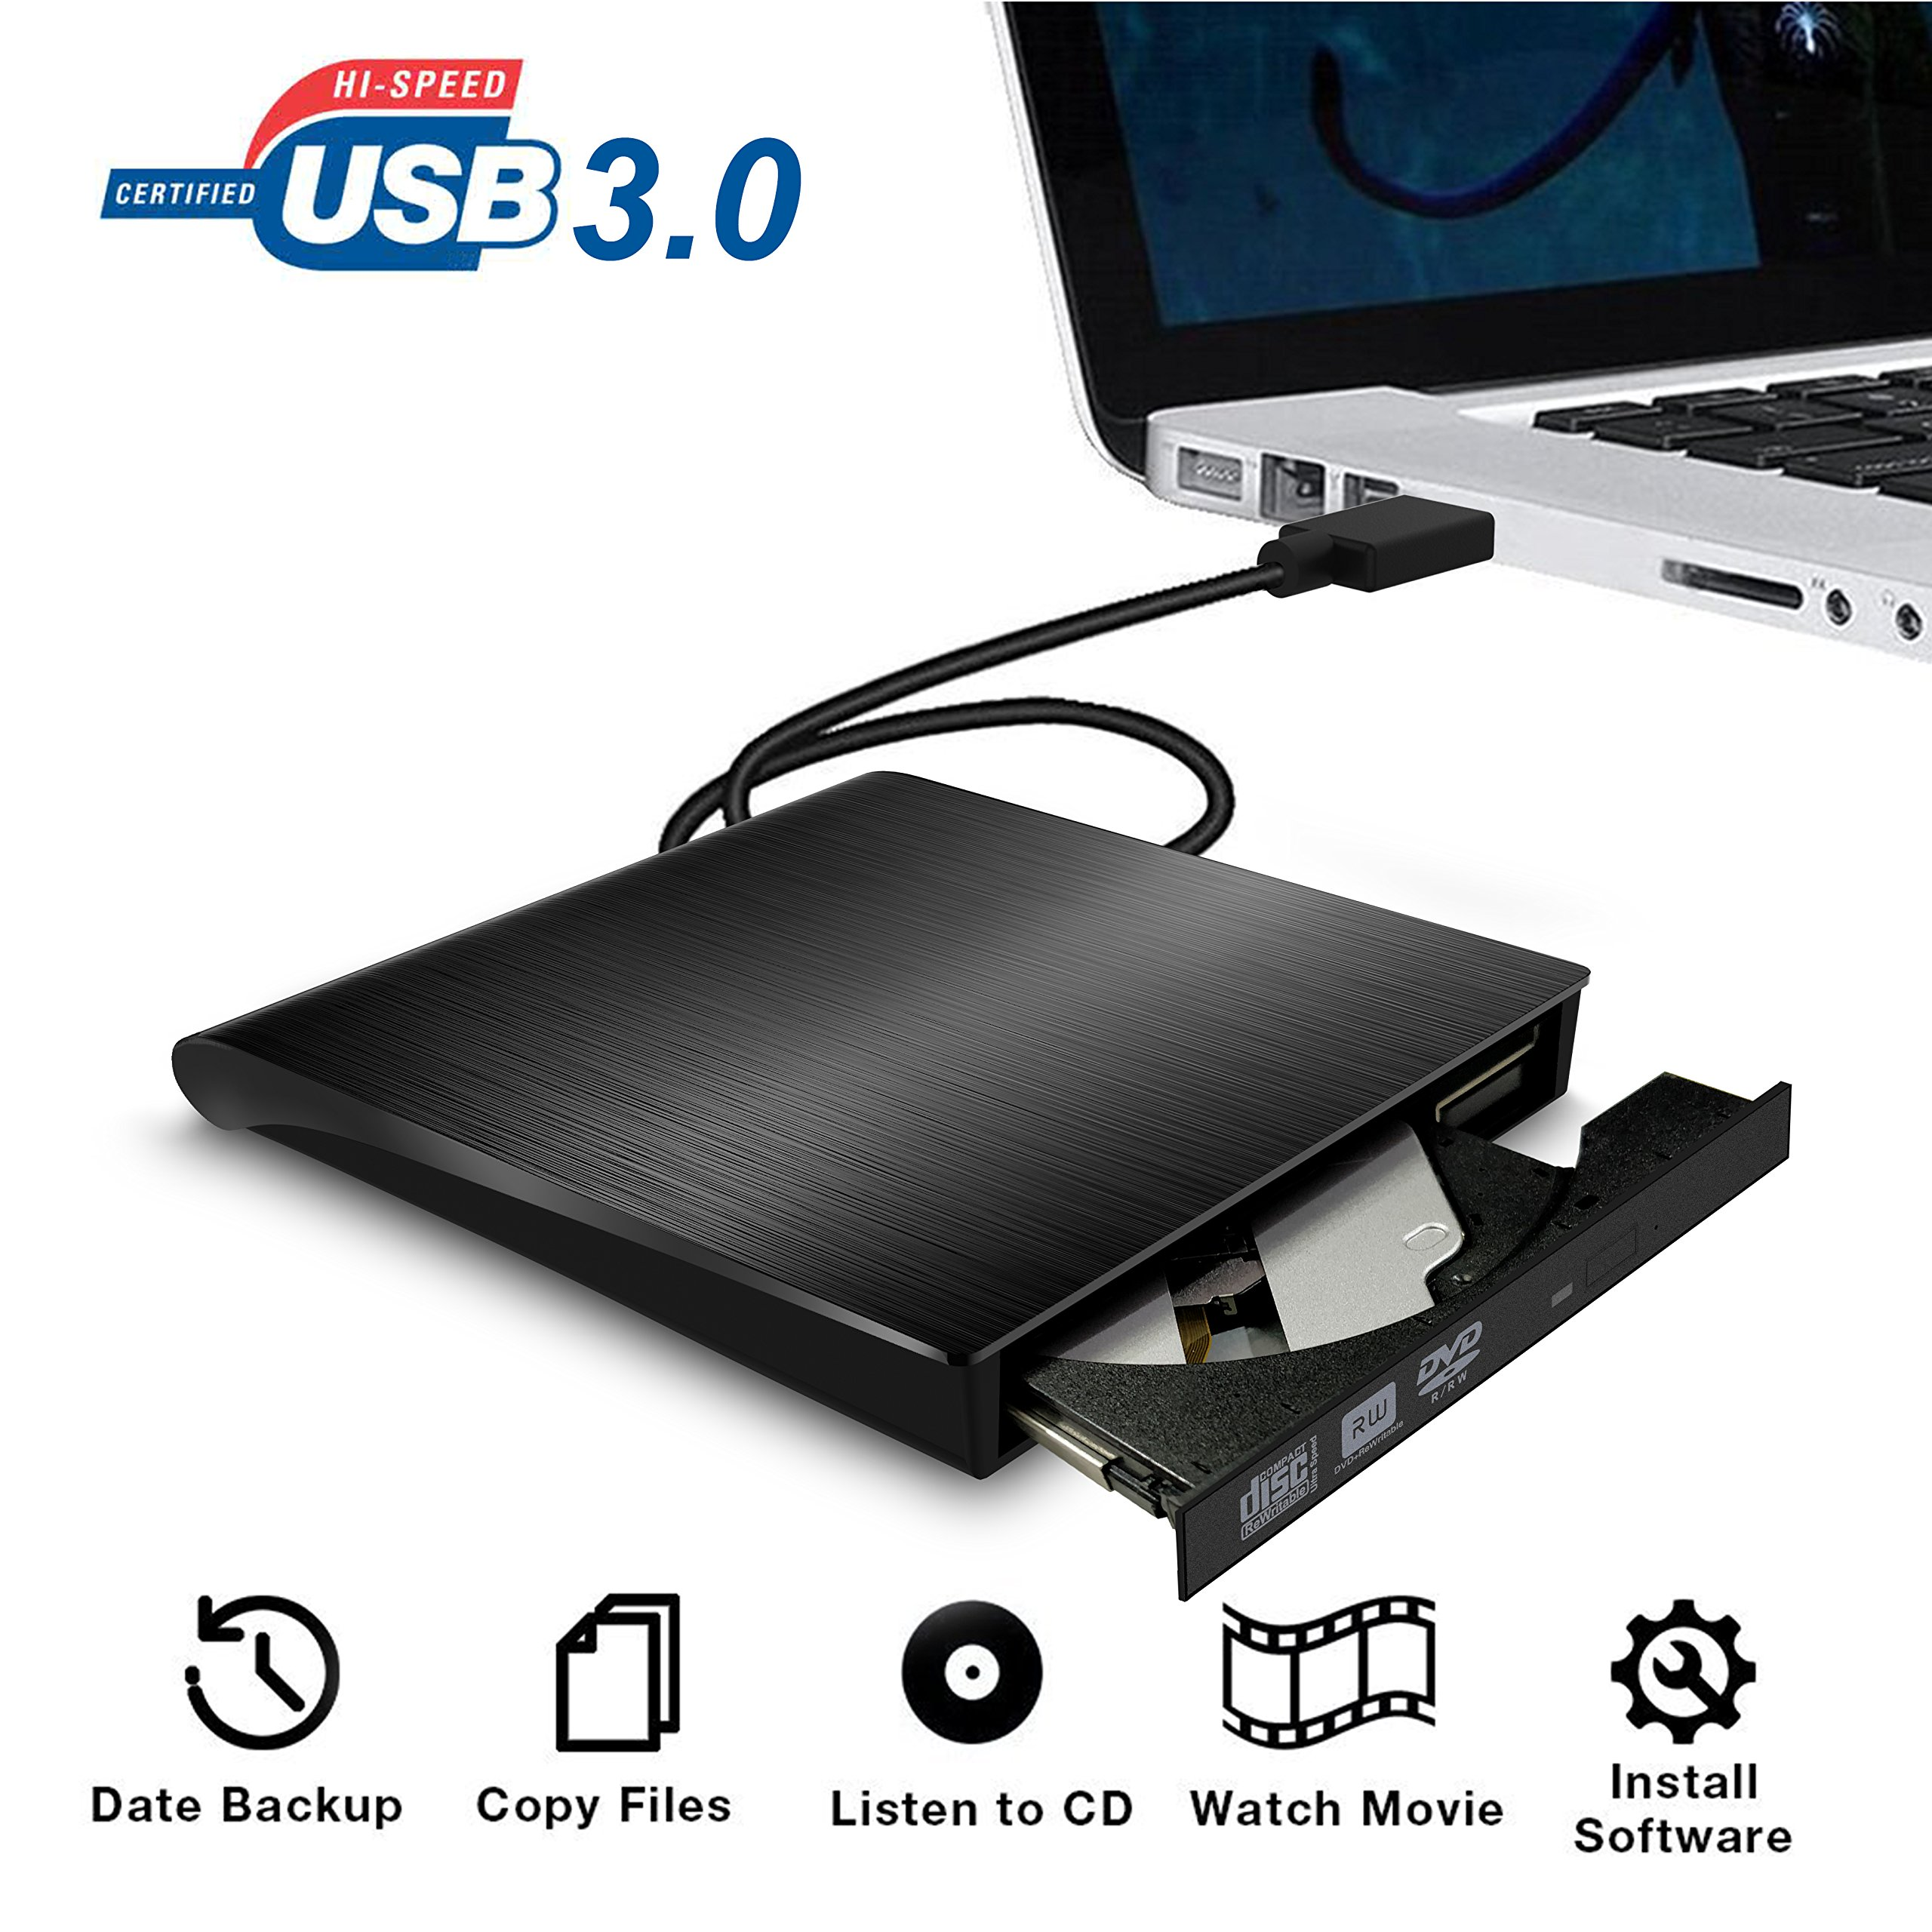 External CD DVD Drive,Valoin High Speed USB 3.0 Data Transfer Super Slim CD DVD-RW DVD ROM Drive for Laptop Desktop MacBook Win 7/8/10/Vista/Mac OS